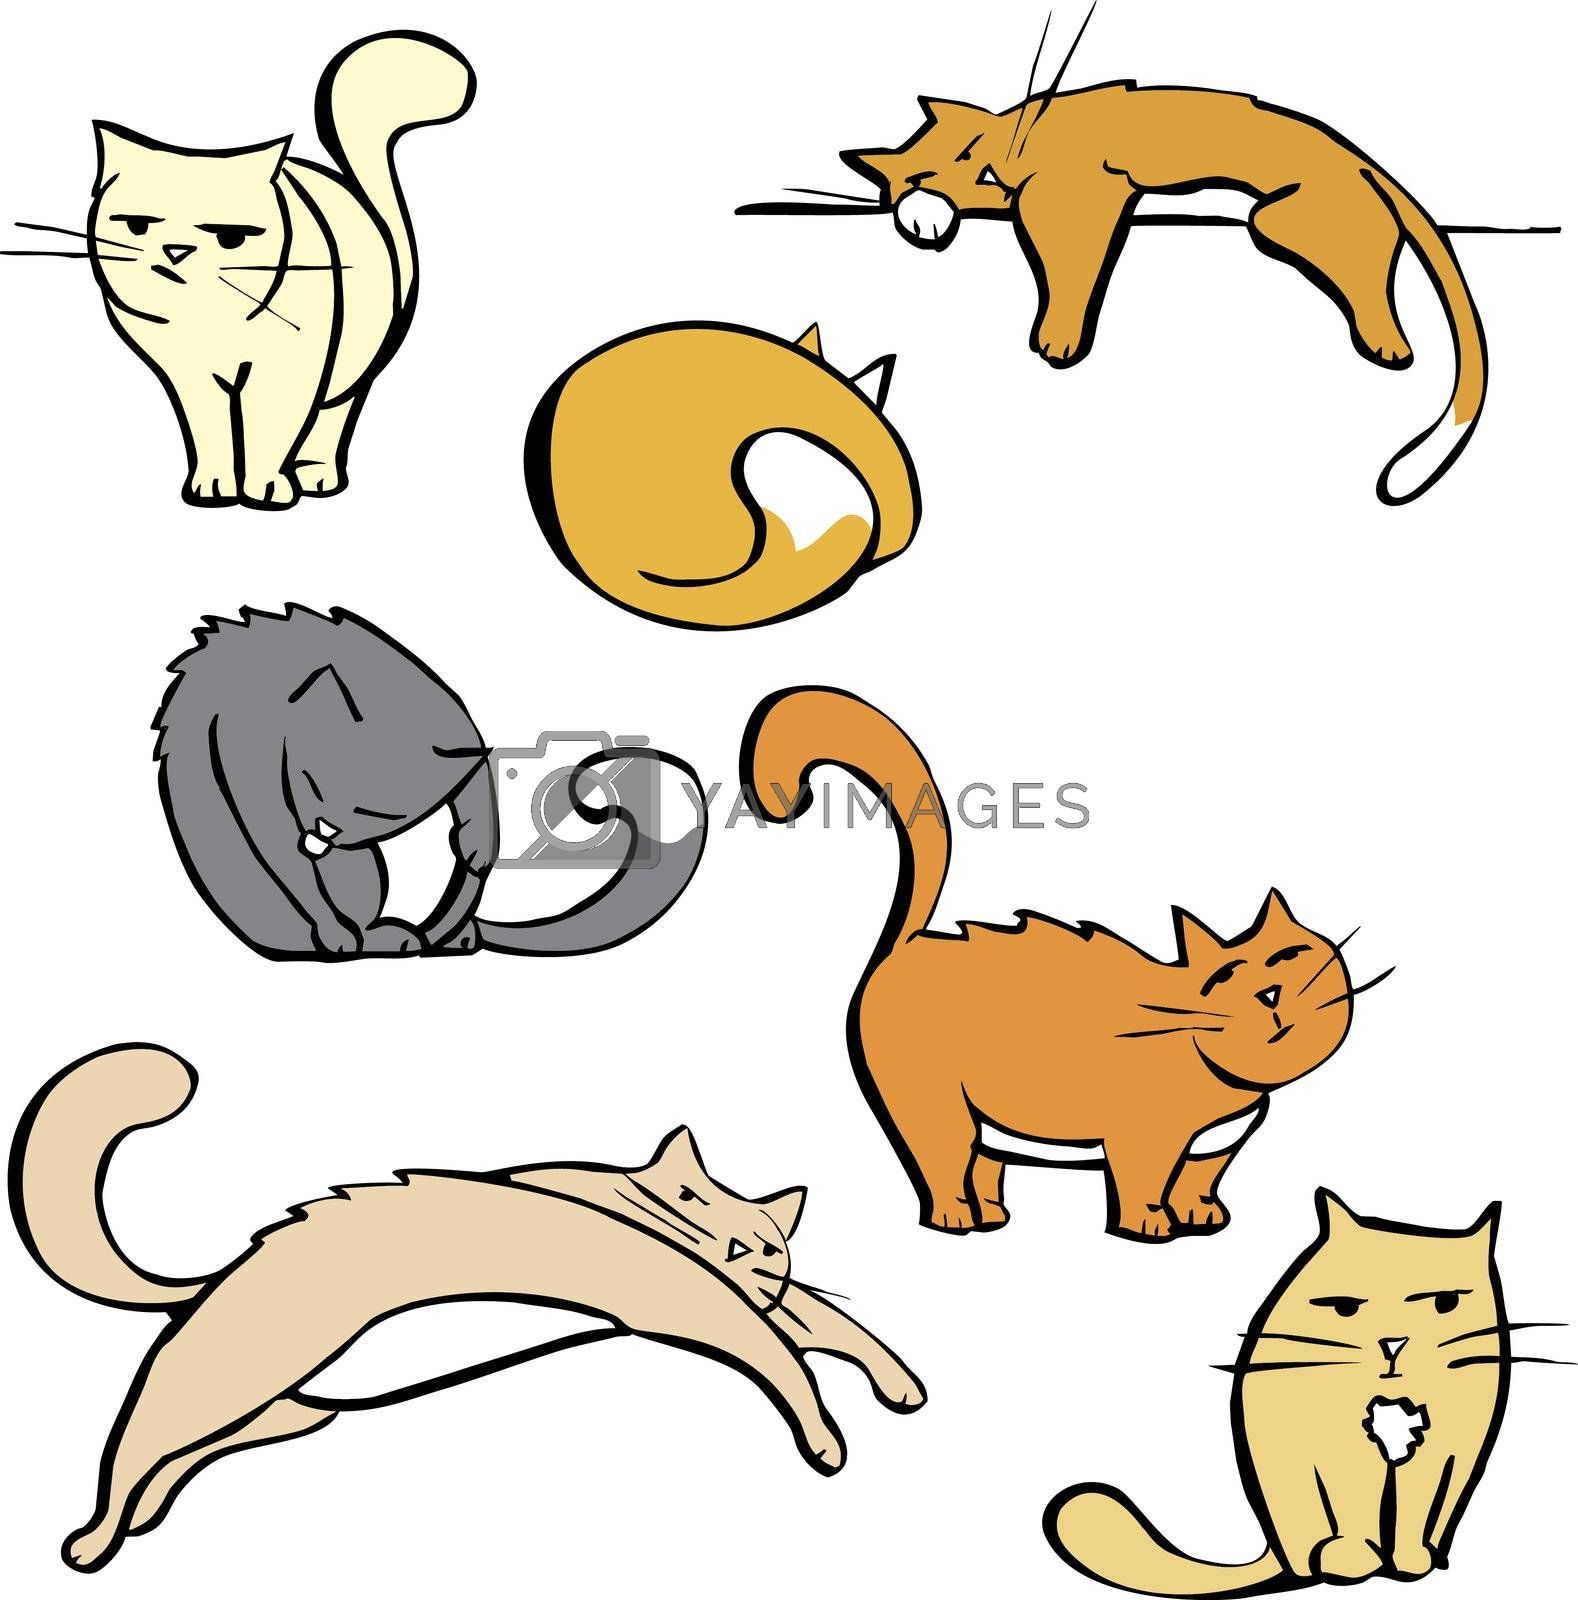 Cartoon image sheet of various cats in different poses. Good for spot illustration space or cartoons.